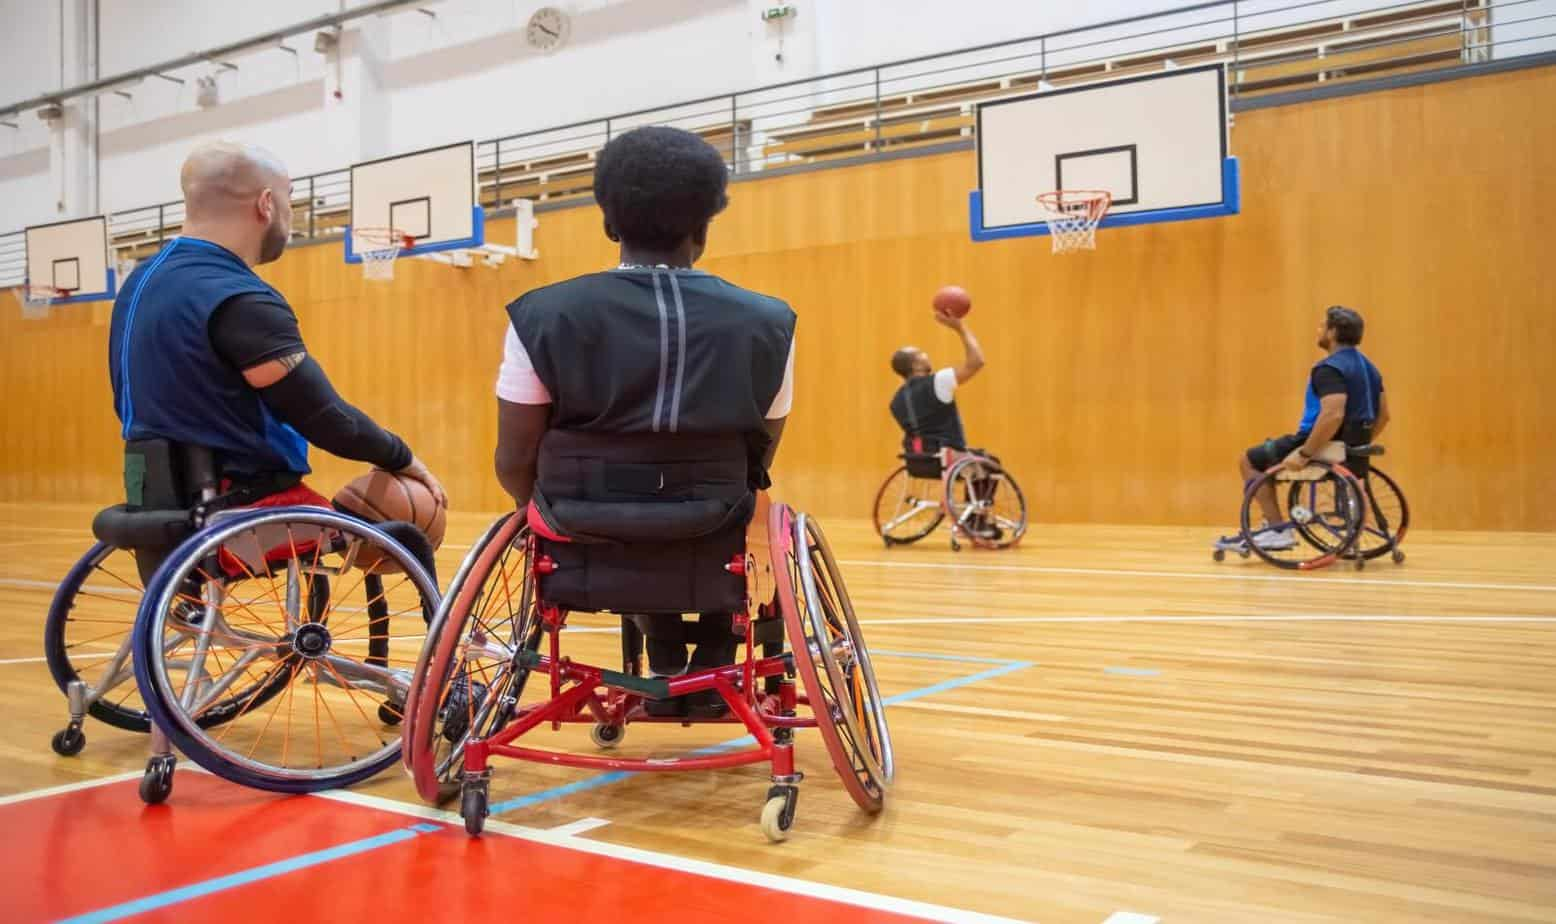 men playing wheelchair basketball at a basketball court